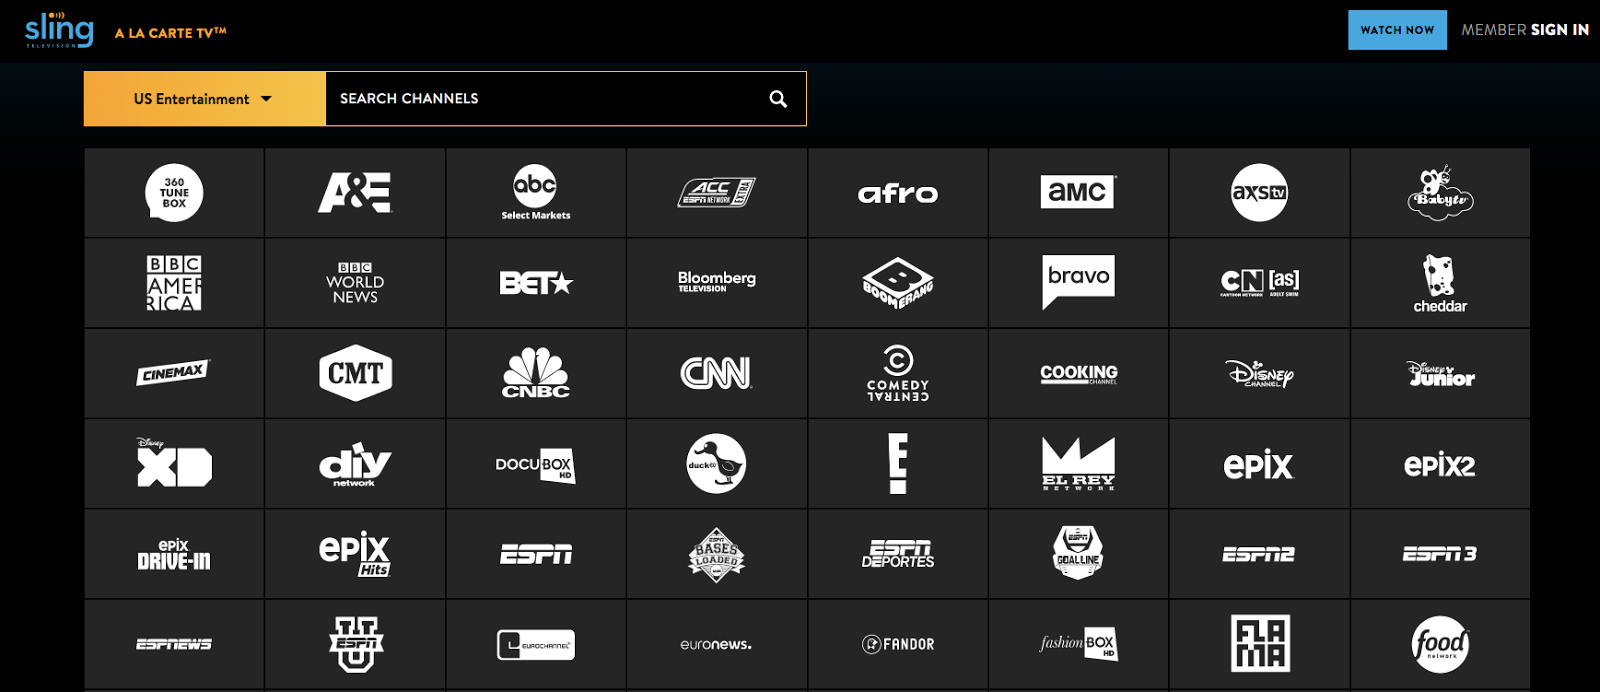 Sling TV Channel List